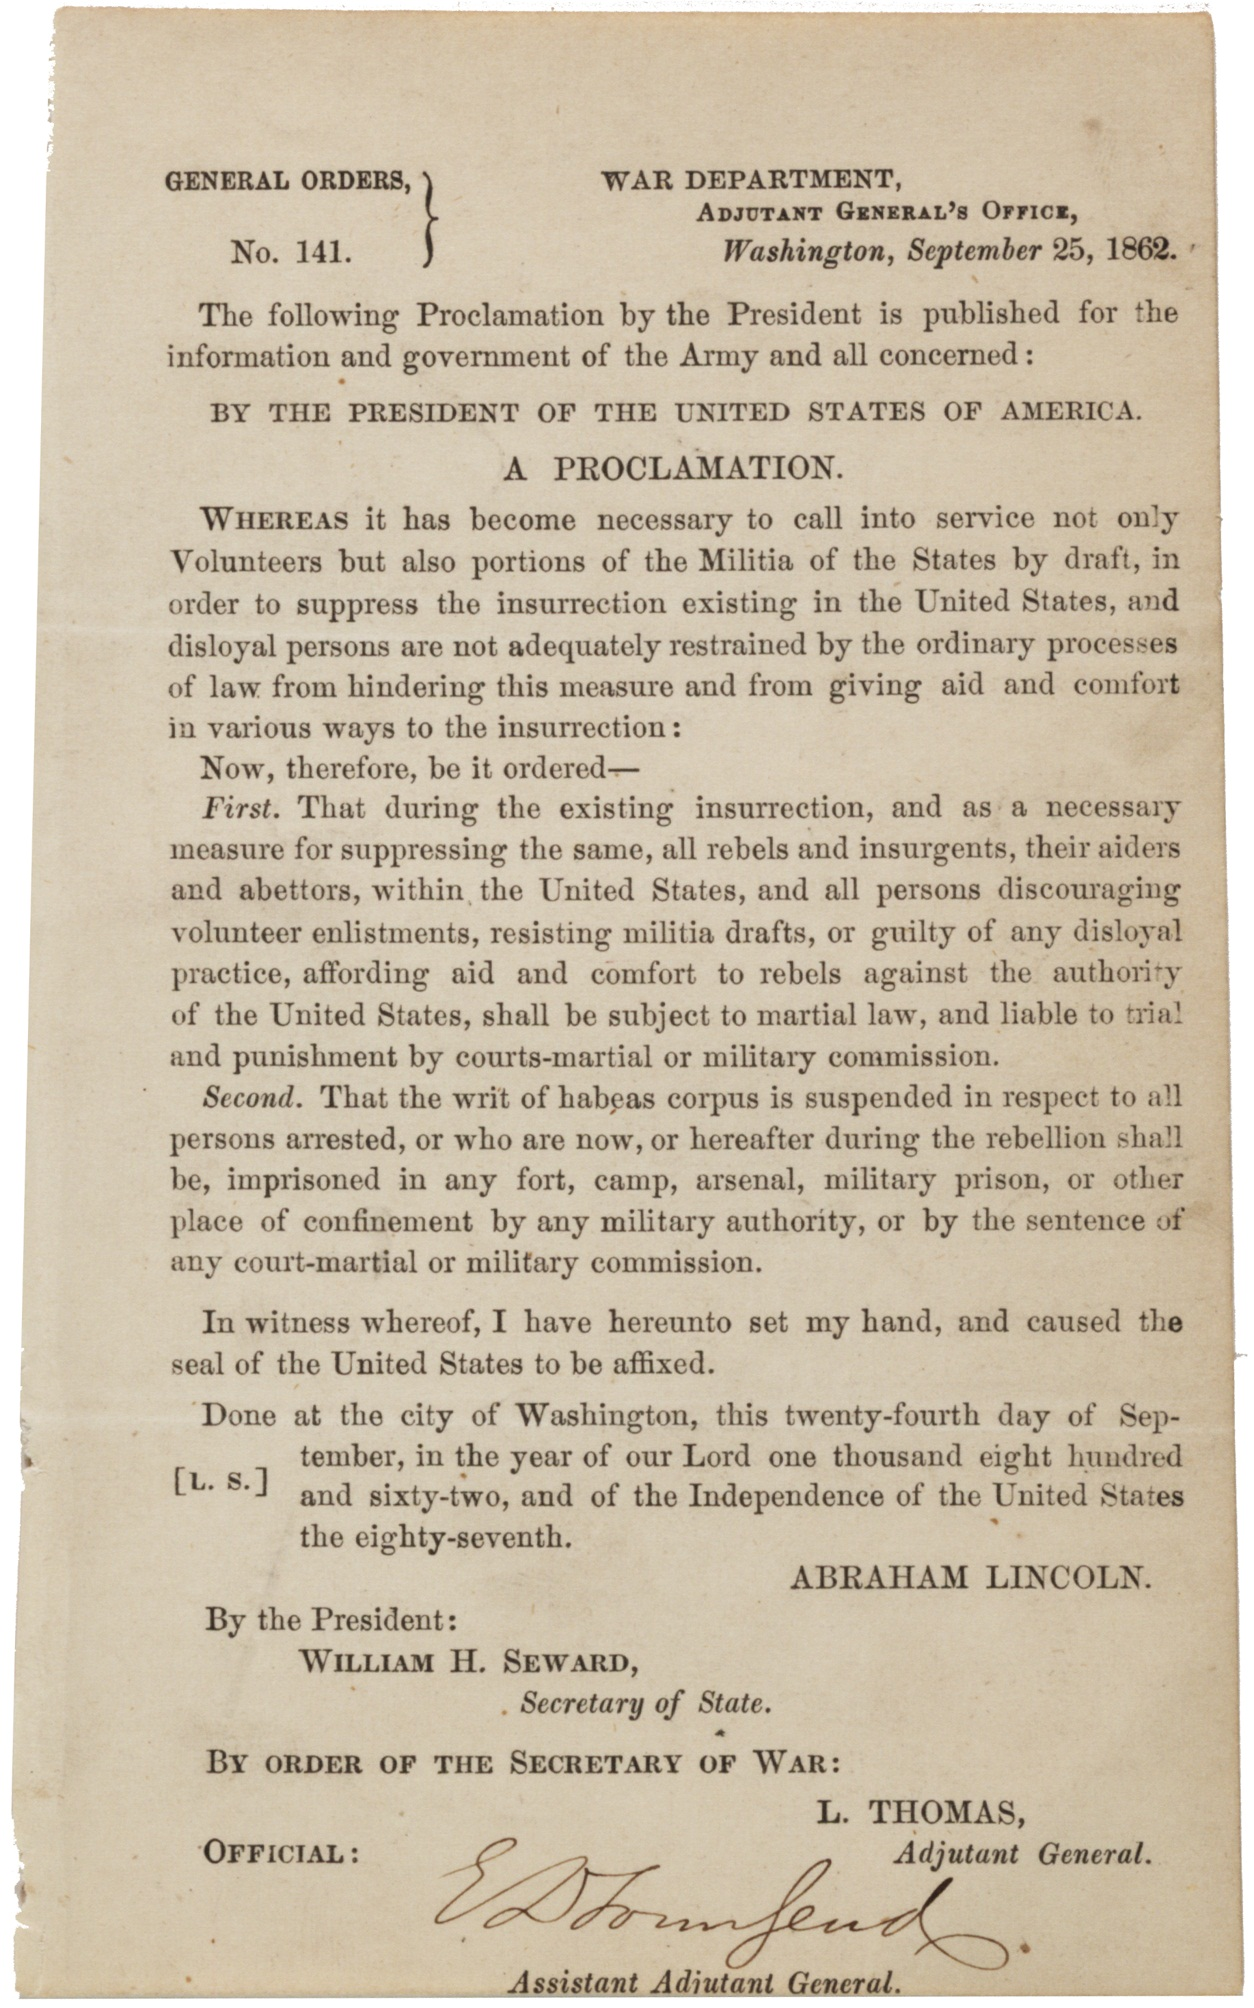 president abraham lincoln and the habeas corpus President abraham lincoln suspended habeas corpus in maryland on april 27, 1861, two weeks after the confederate attack on the union garrison at fort sumter.